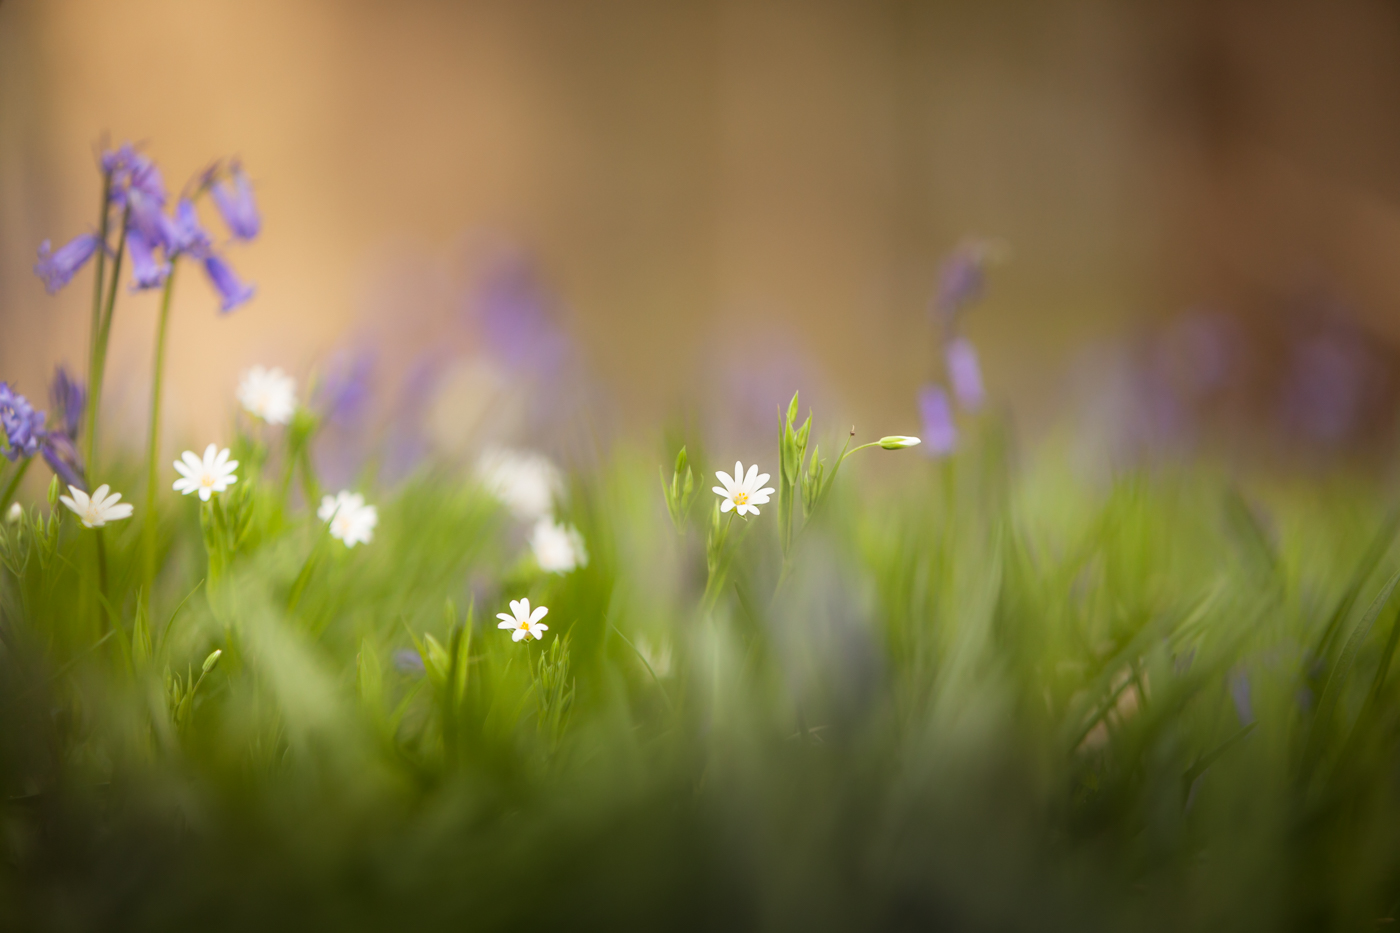 SPRING by Kevin Day